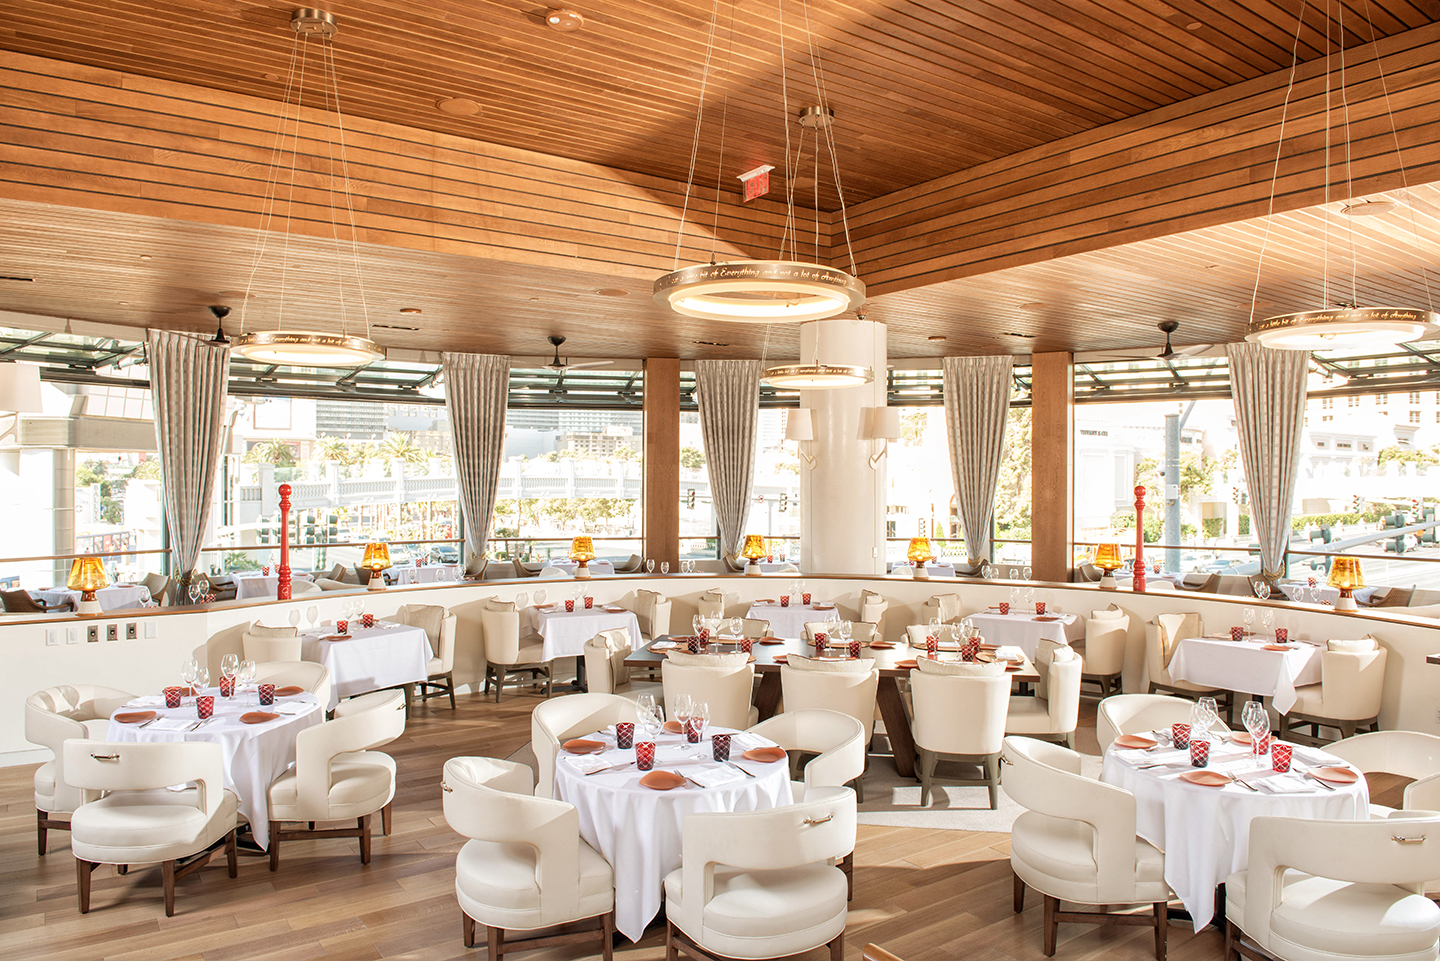 The Giada dining room, photo courtesy of The Cromwell